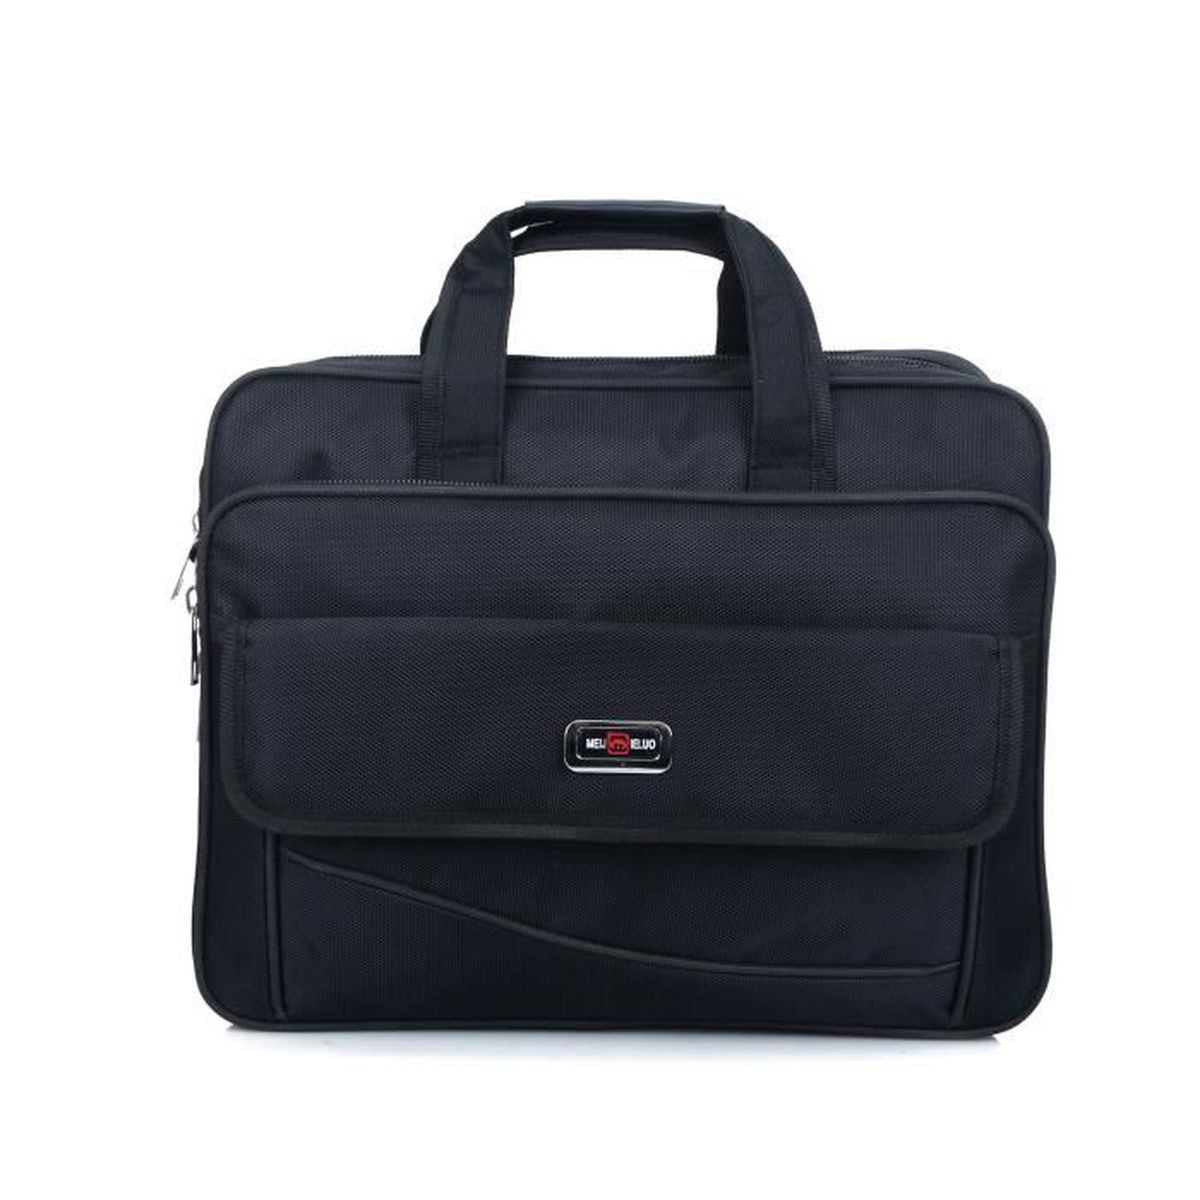 14 pouces serviette crossbody homme de bureau sac oxford mallettes sac d 39 ordinateur pour les. Black Bedroom Furniture Sets. Home Design Ideas